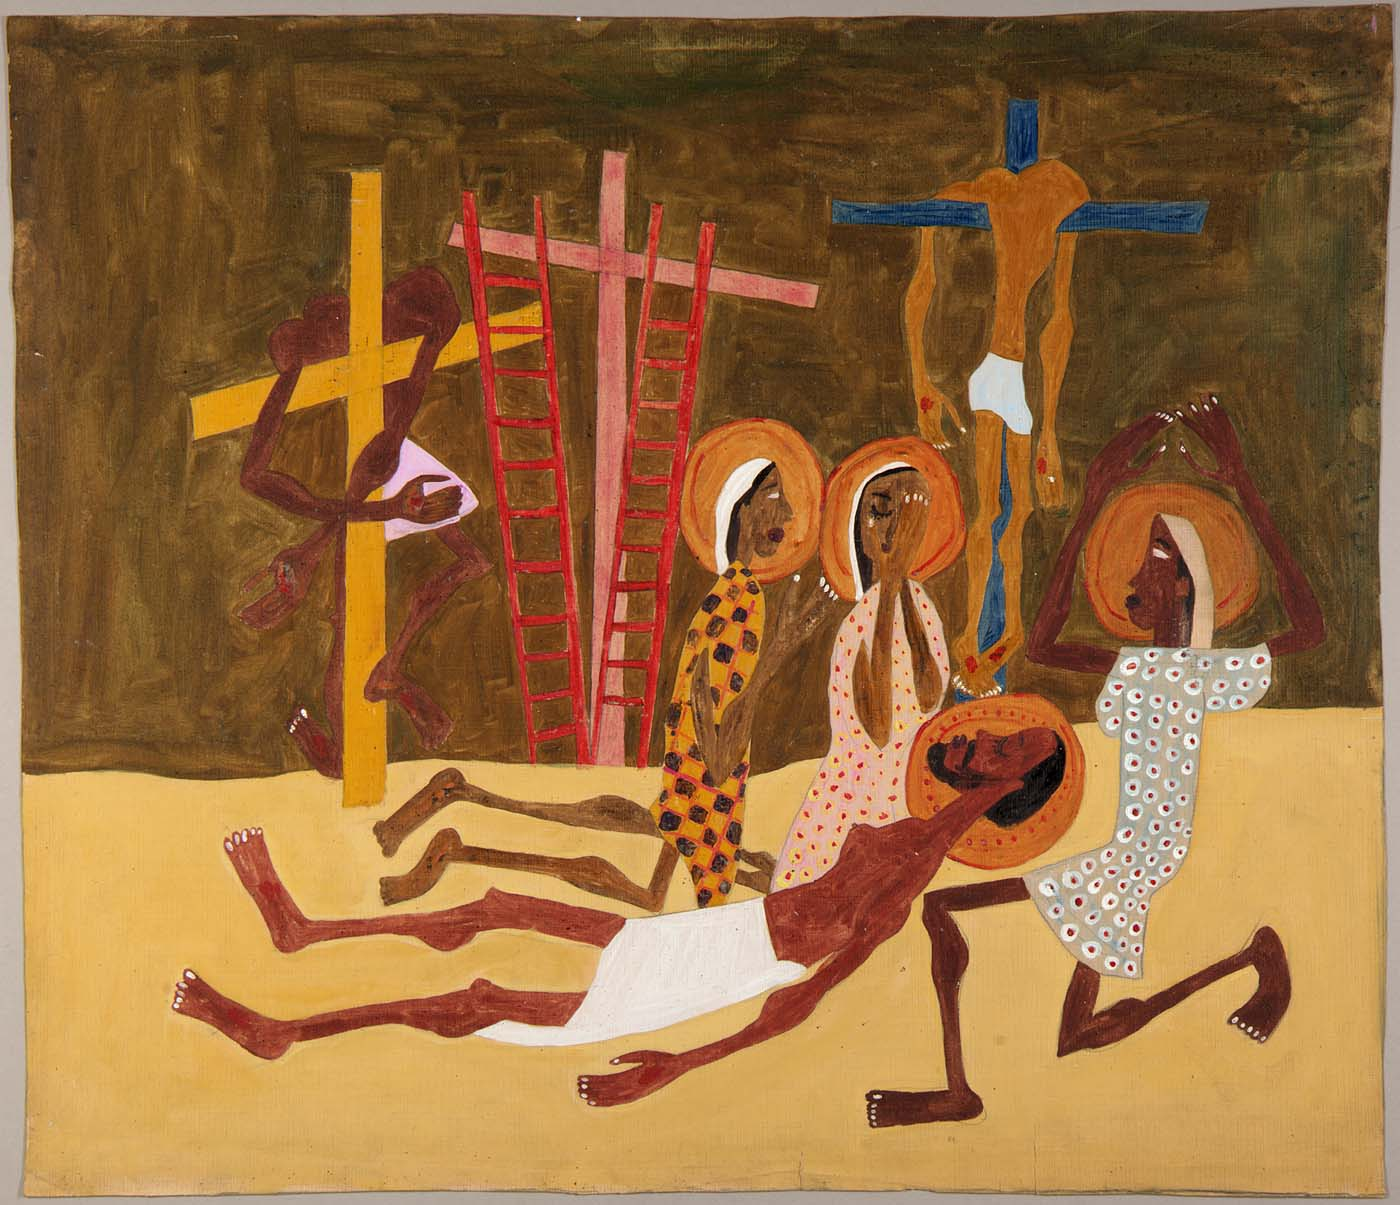 Lamentation, 1944, tempera and pencil on paper 19 1/4 x 22 3/8 in. Smithsonian American Art Museum, Gift of the Harmon Foundation, used with permission.